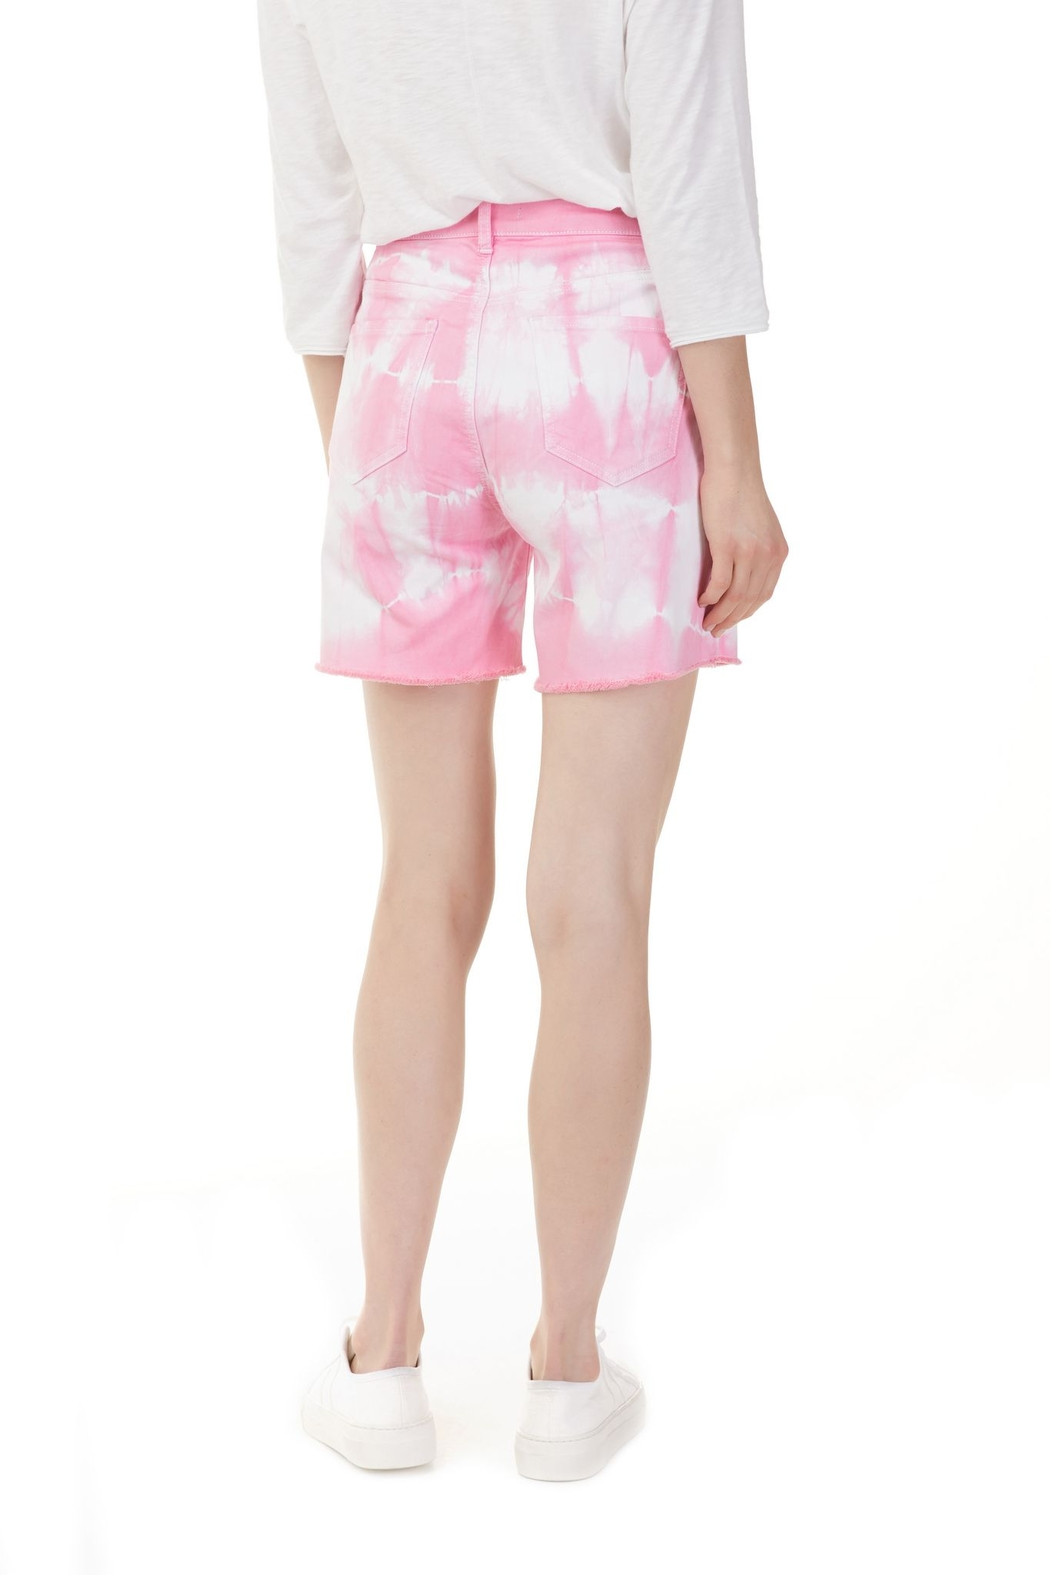 Charlie B. Flamingo Tie Dye Jean Shorts - Front Full Image